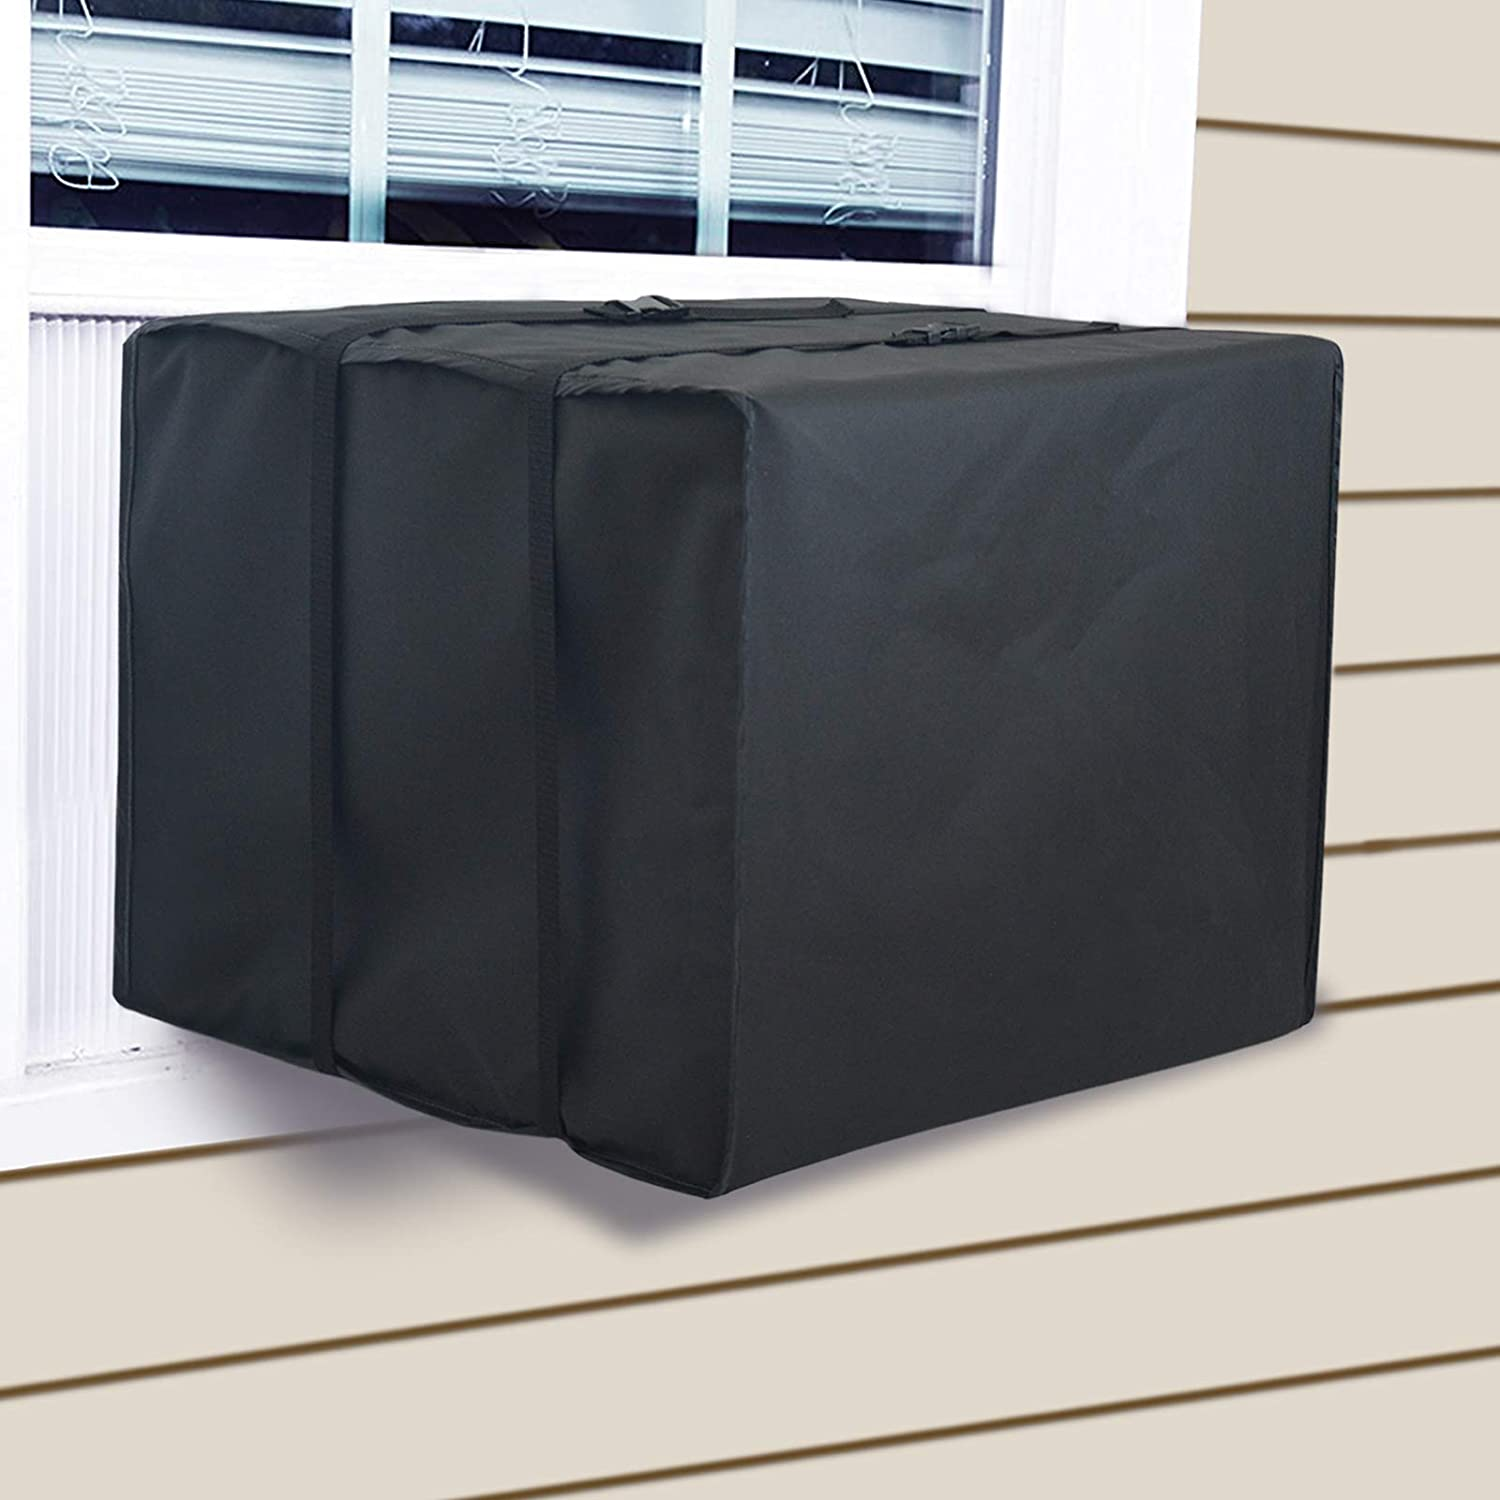 Vinyl Outside Window AC Air Conditioner Cover for Small Units Up to 7000 BTU